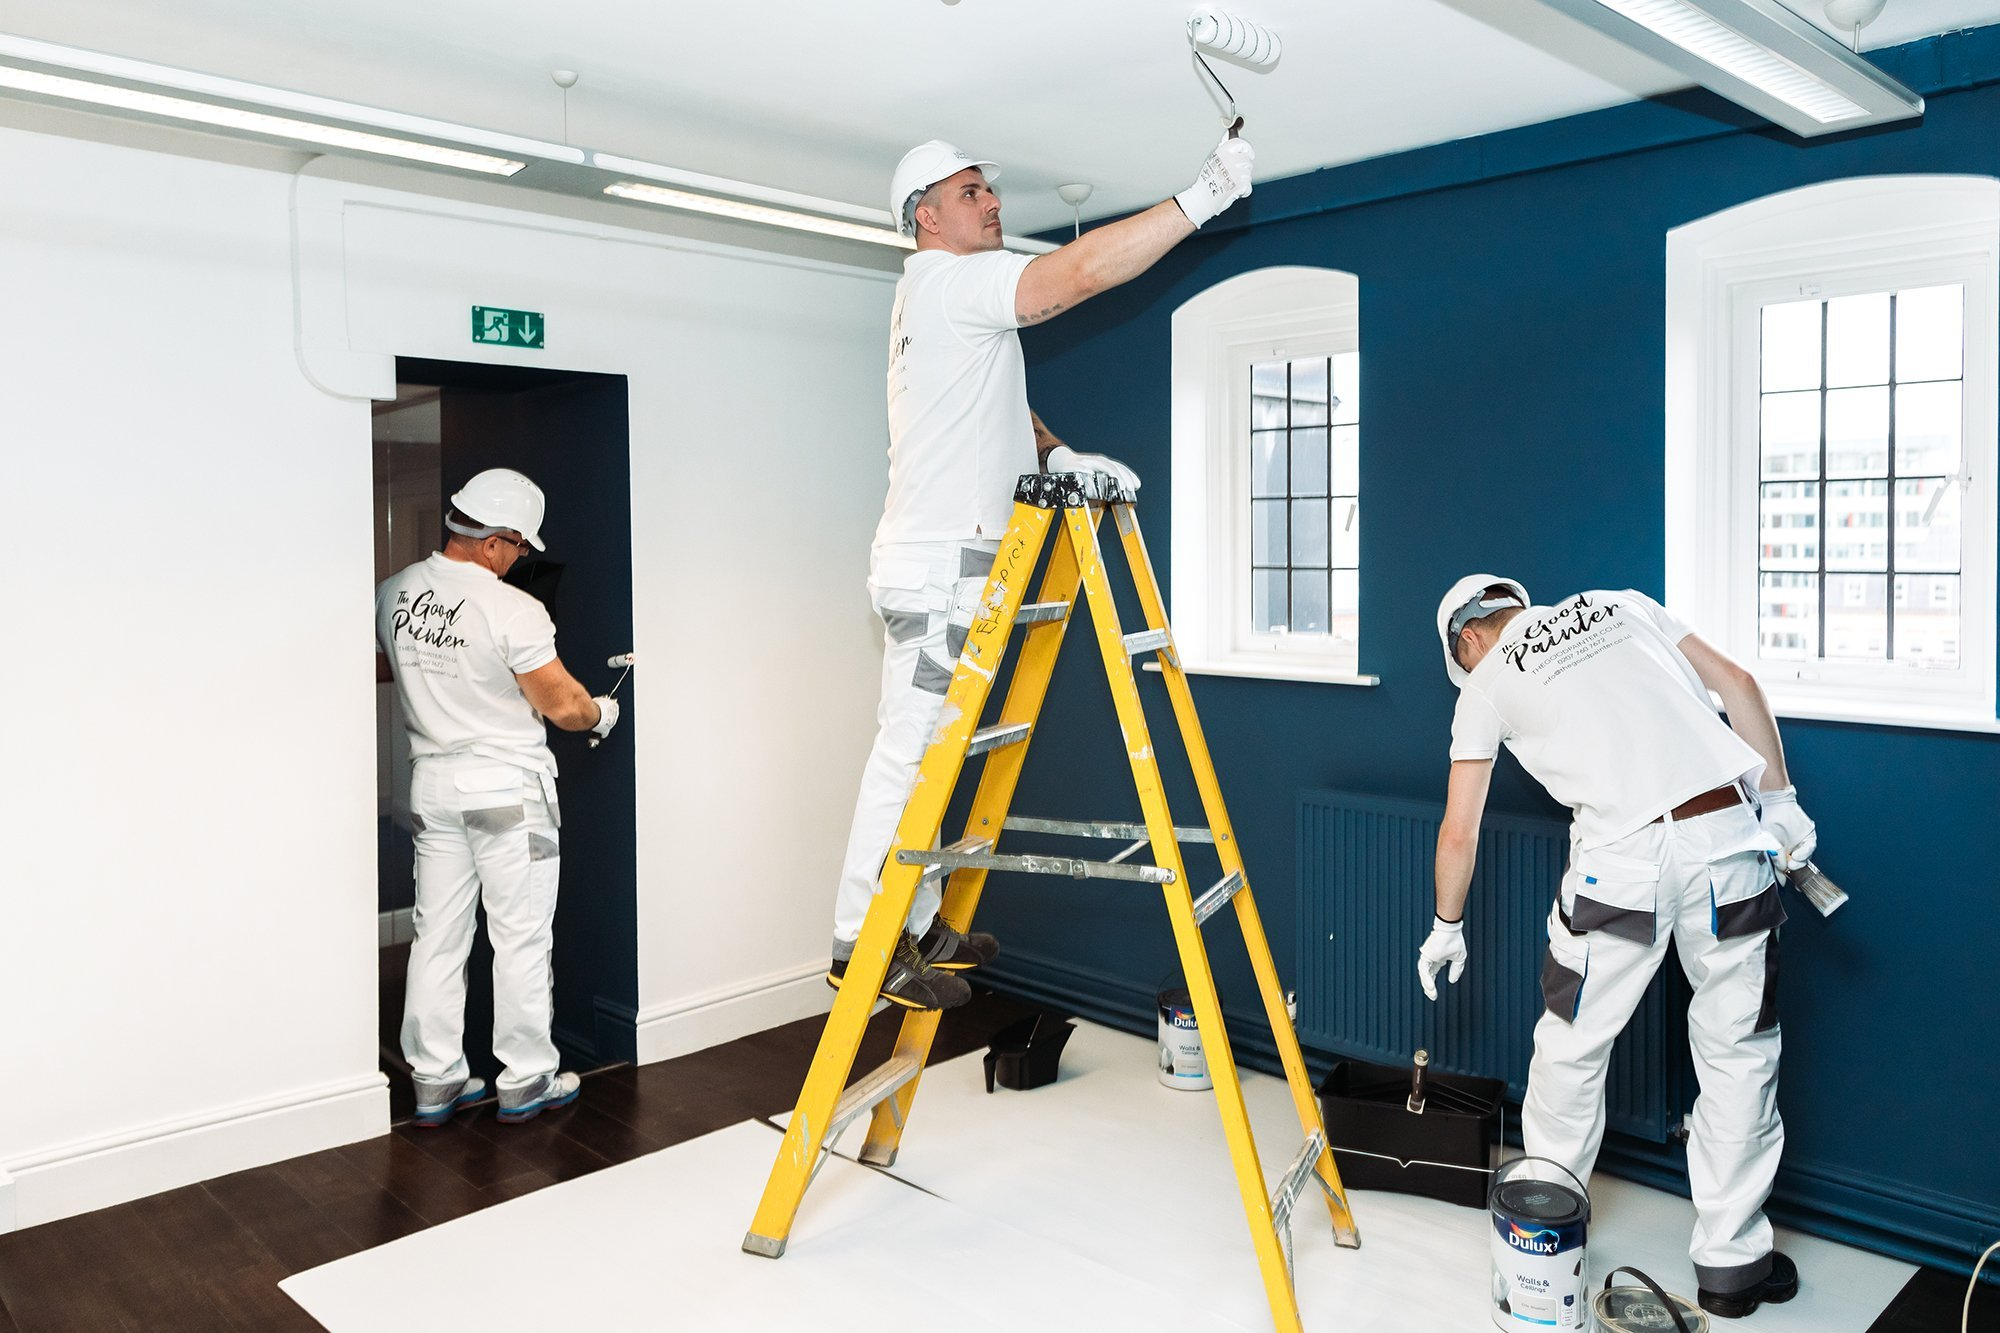 OUR EXPERT GUIDE ON TOP PAINTING MISTAKE TO AVOID